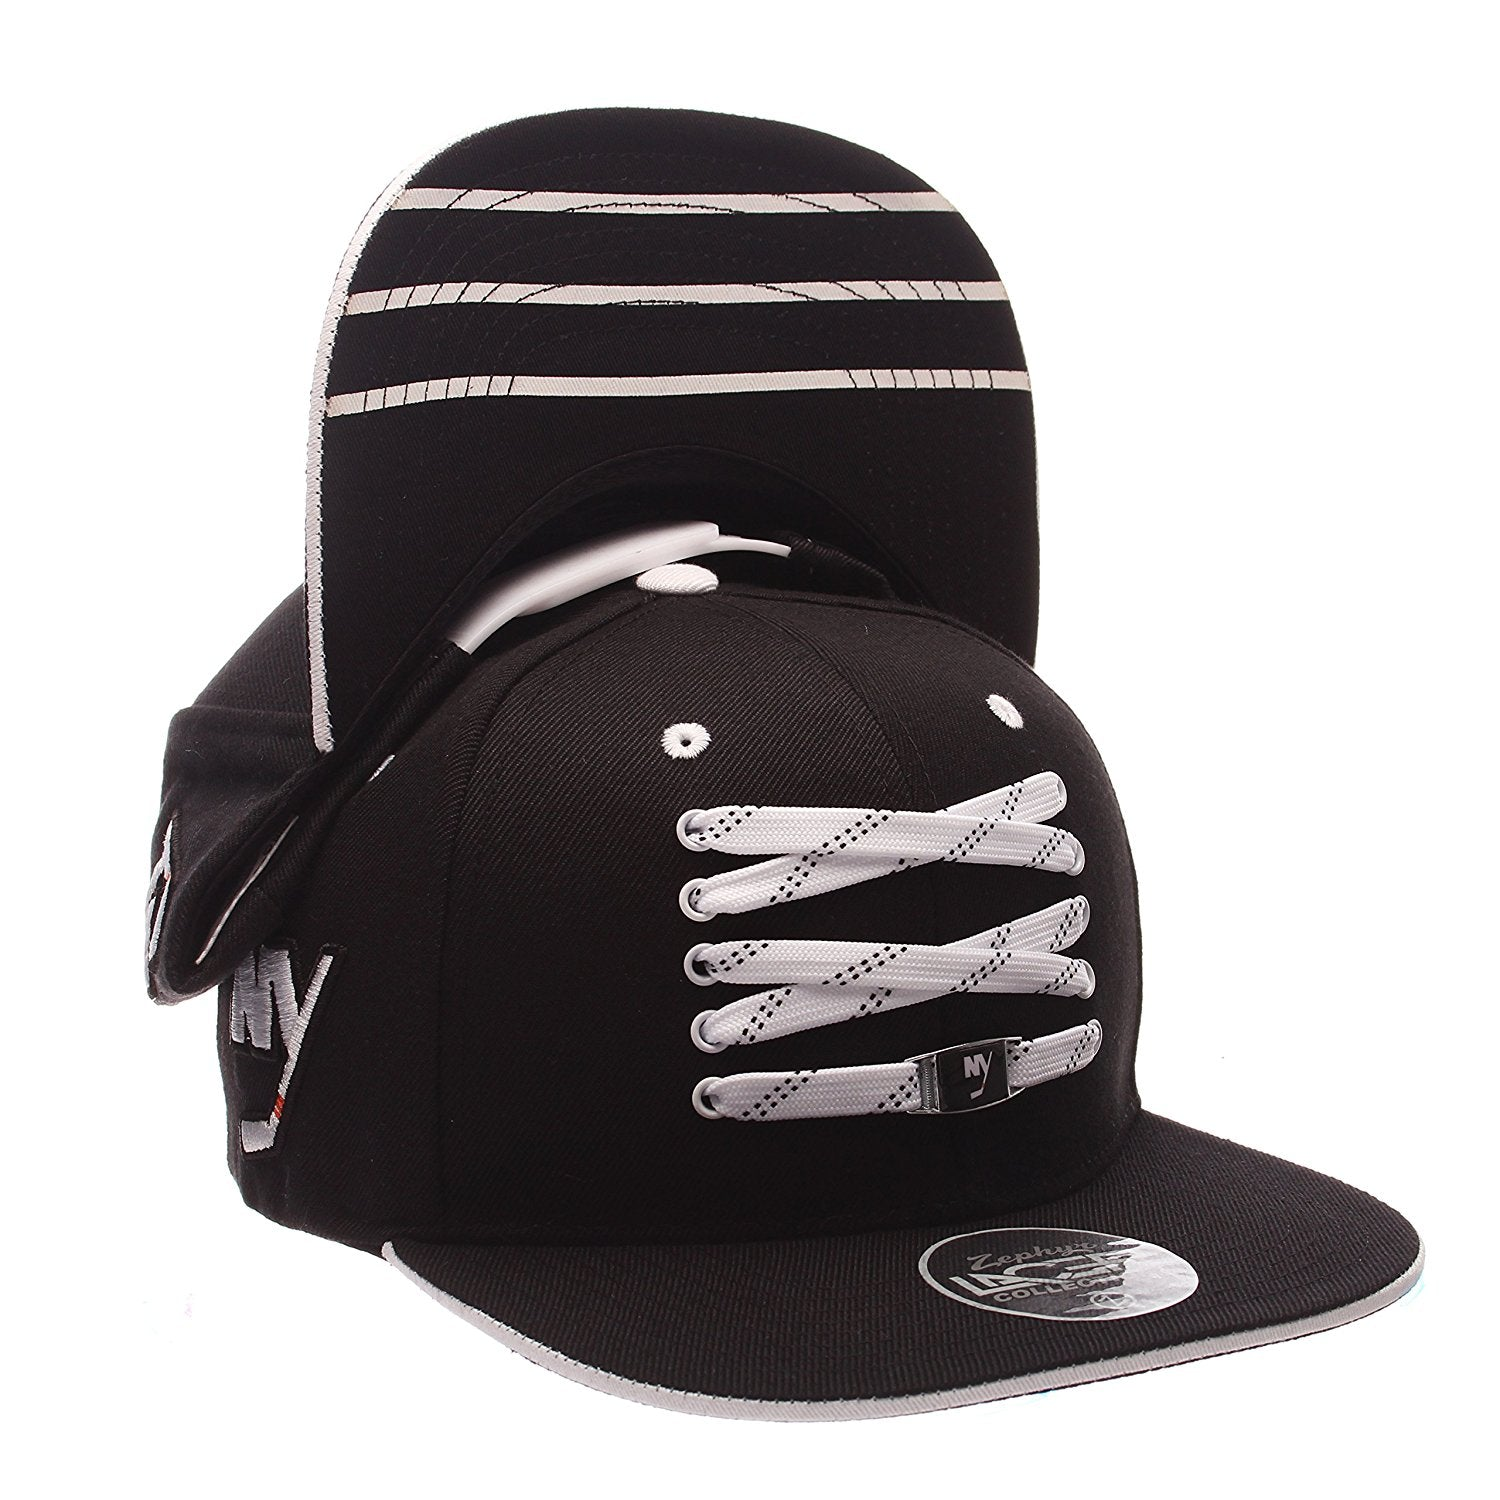 New York Islanders Black Jersey Snapback